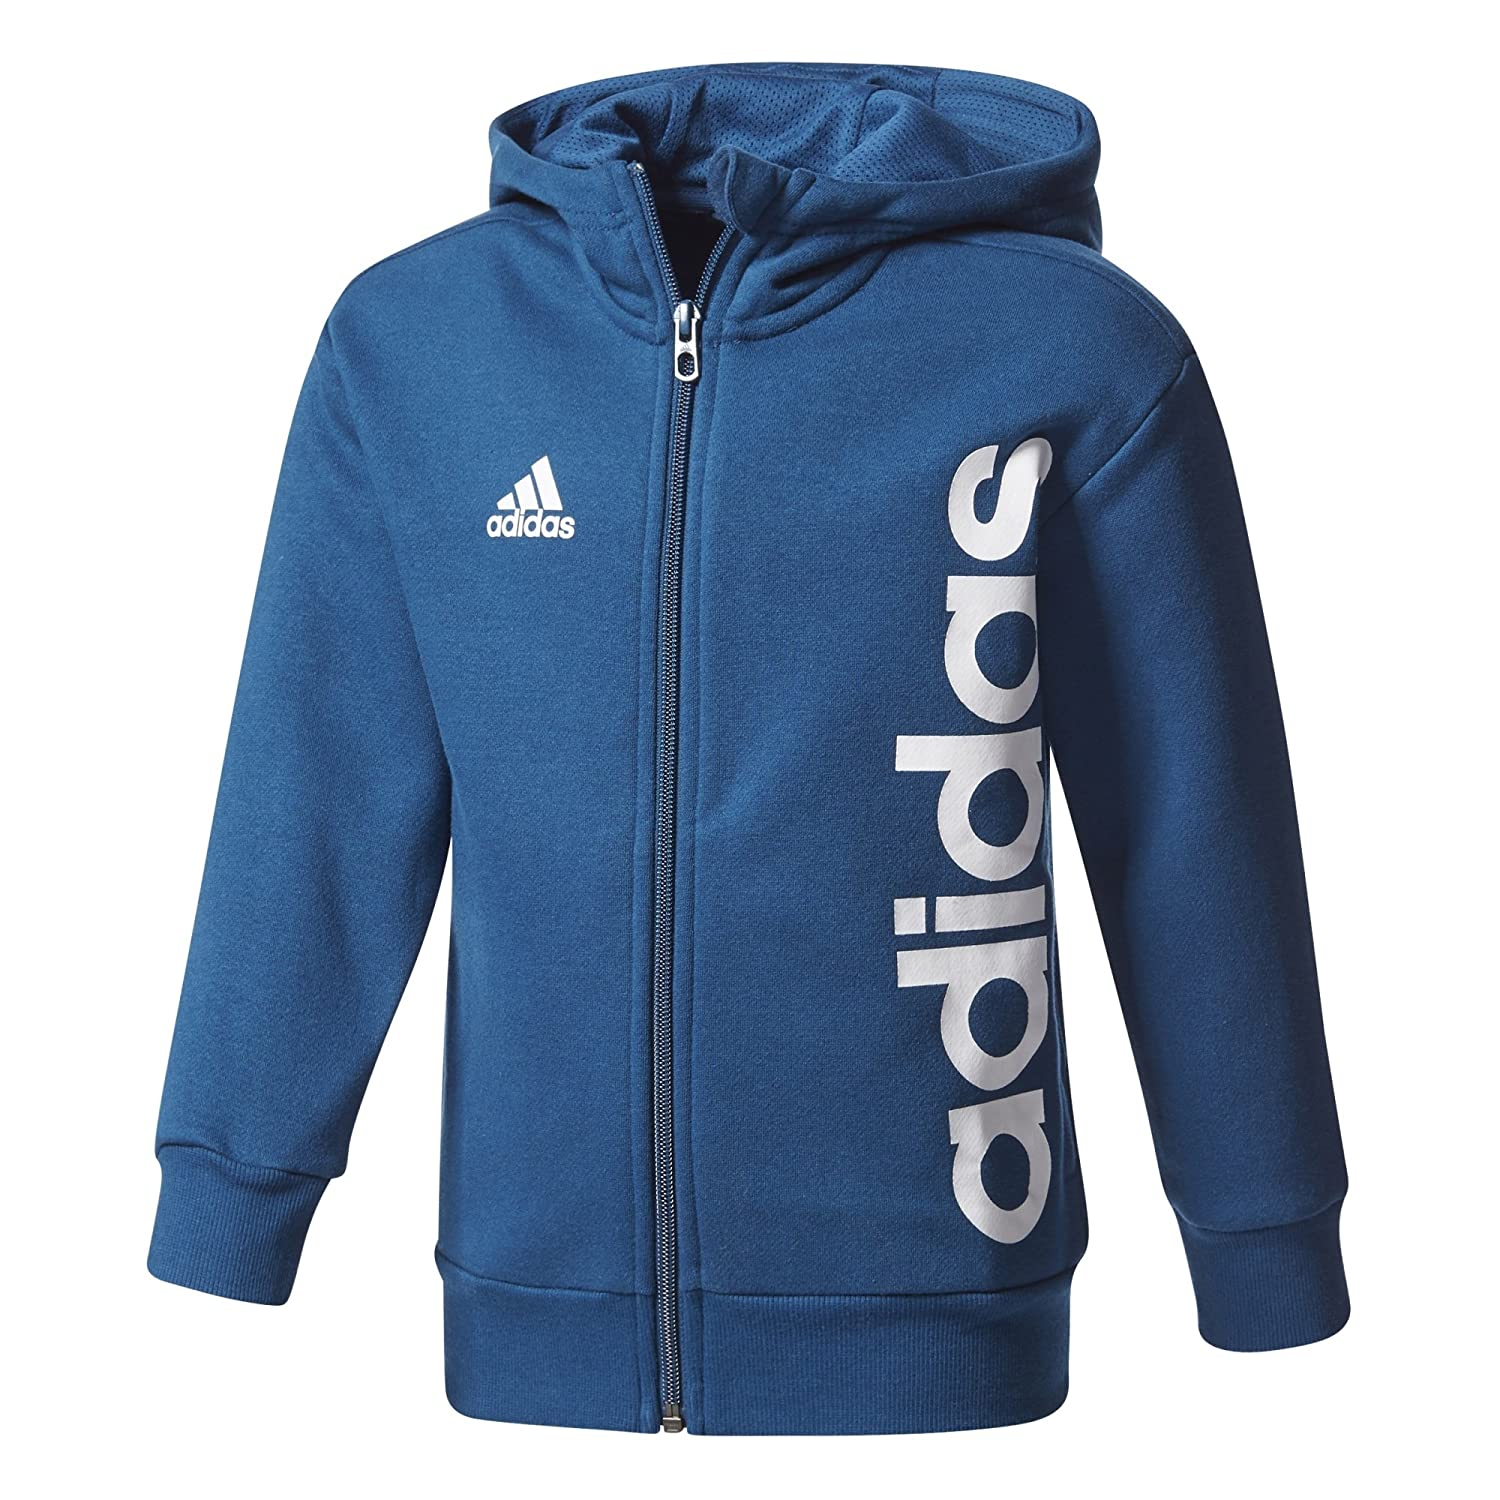 adidas Little Kids Full Zip Hoodie CE9891